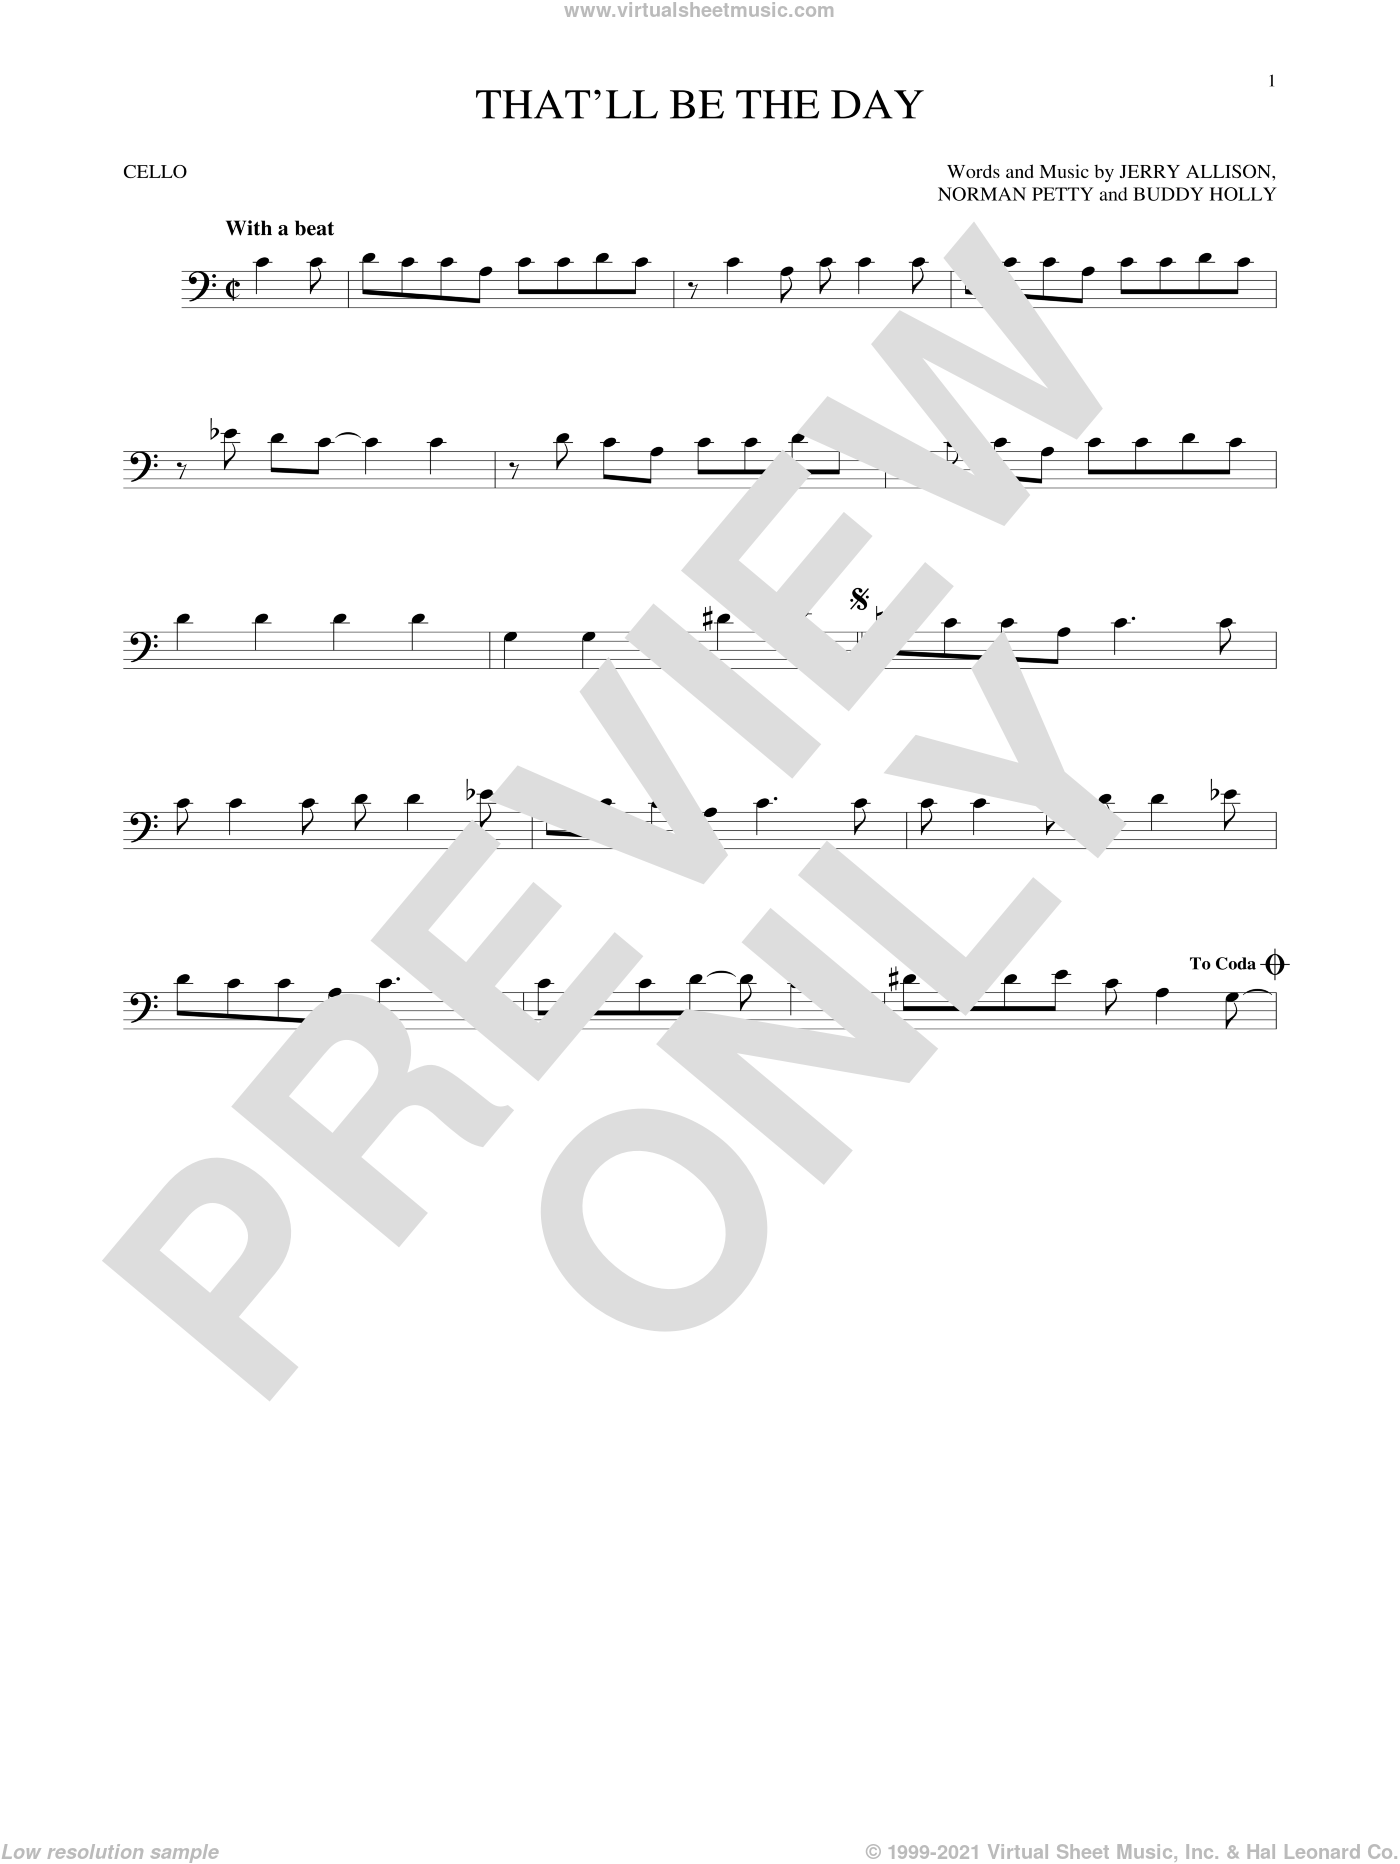 That'll Be The Day sheet music for cello solo by The Crickets, Buddy Holly, Jerry Allison and Norman Petty, intermediate skill level